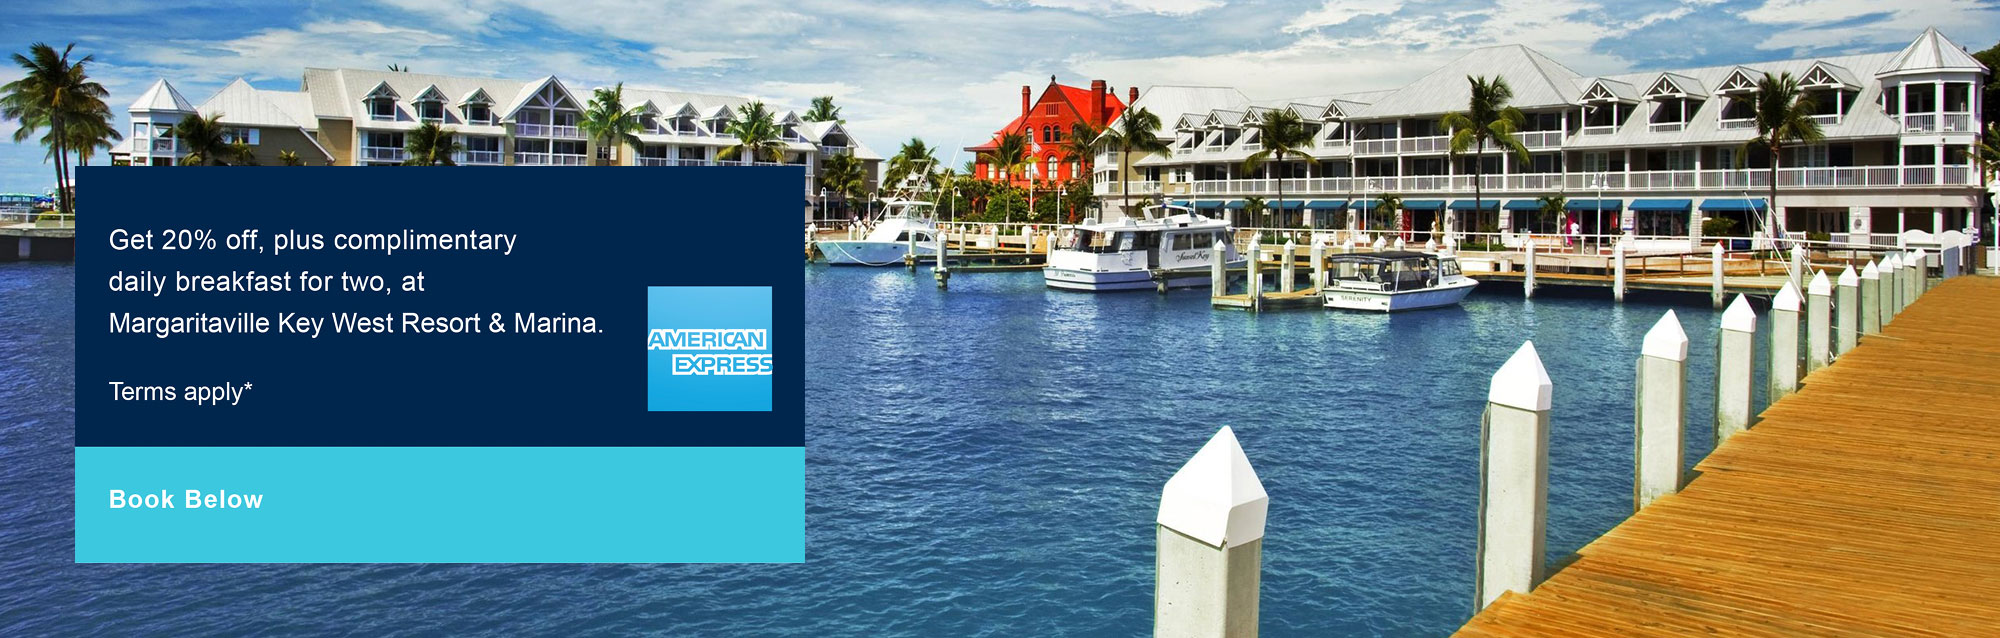 american express discount at margaritaville key west resort & marina